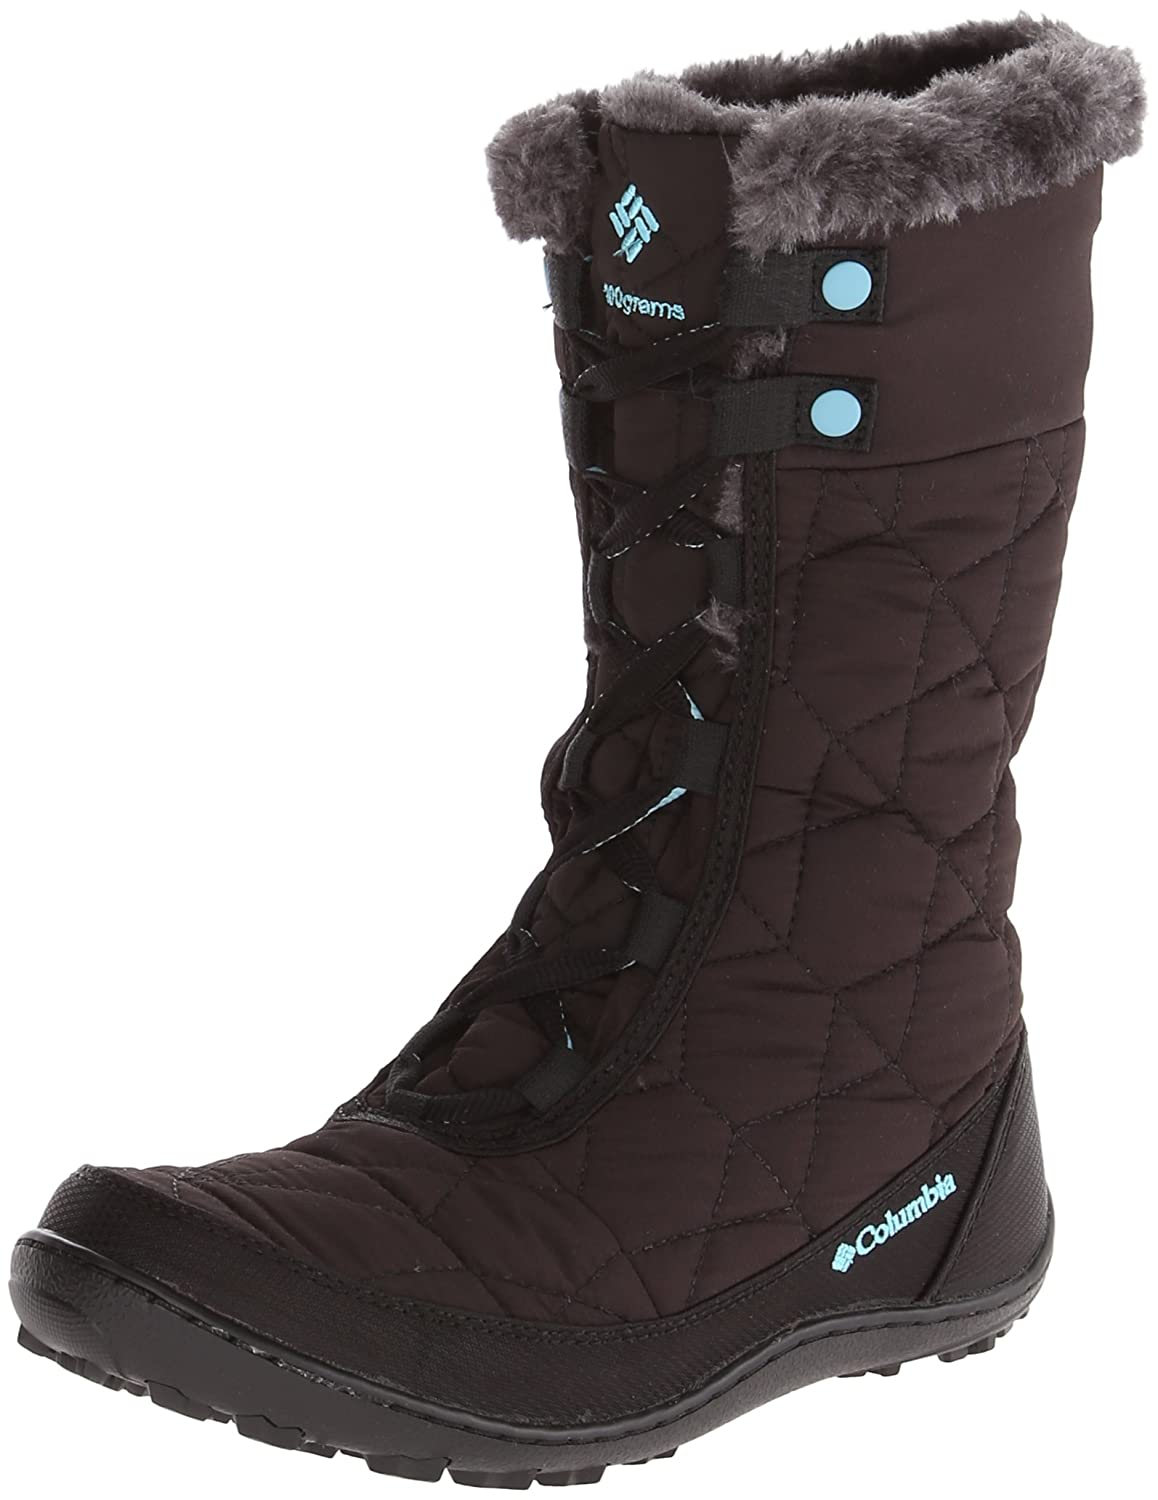 Columbia Youth Minx Mid Ii Waterproof Omni Heat Botas de Senderismo para